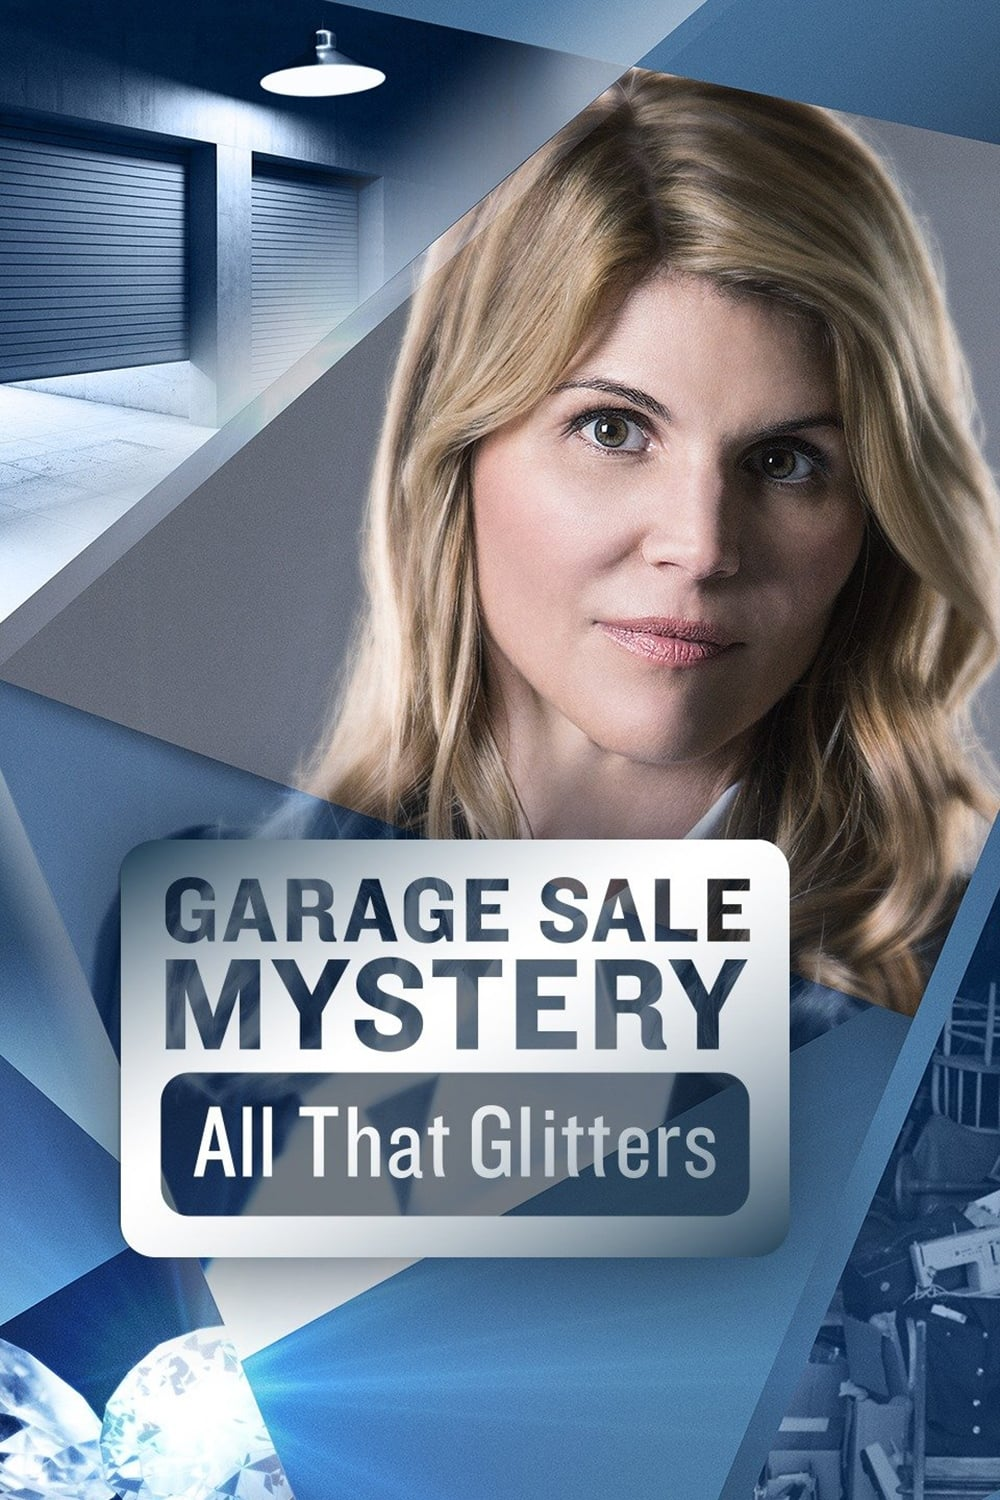 Garage Sale Mystery: All That Glitters (2014)